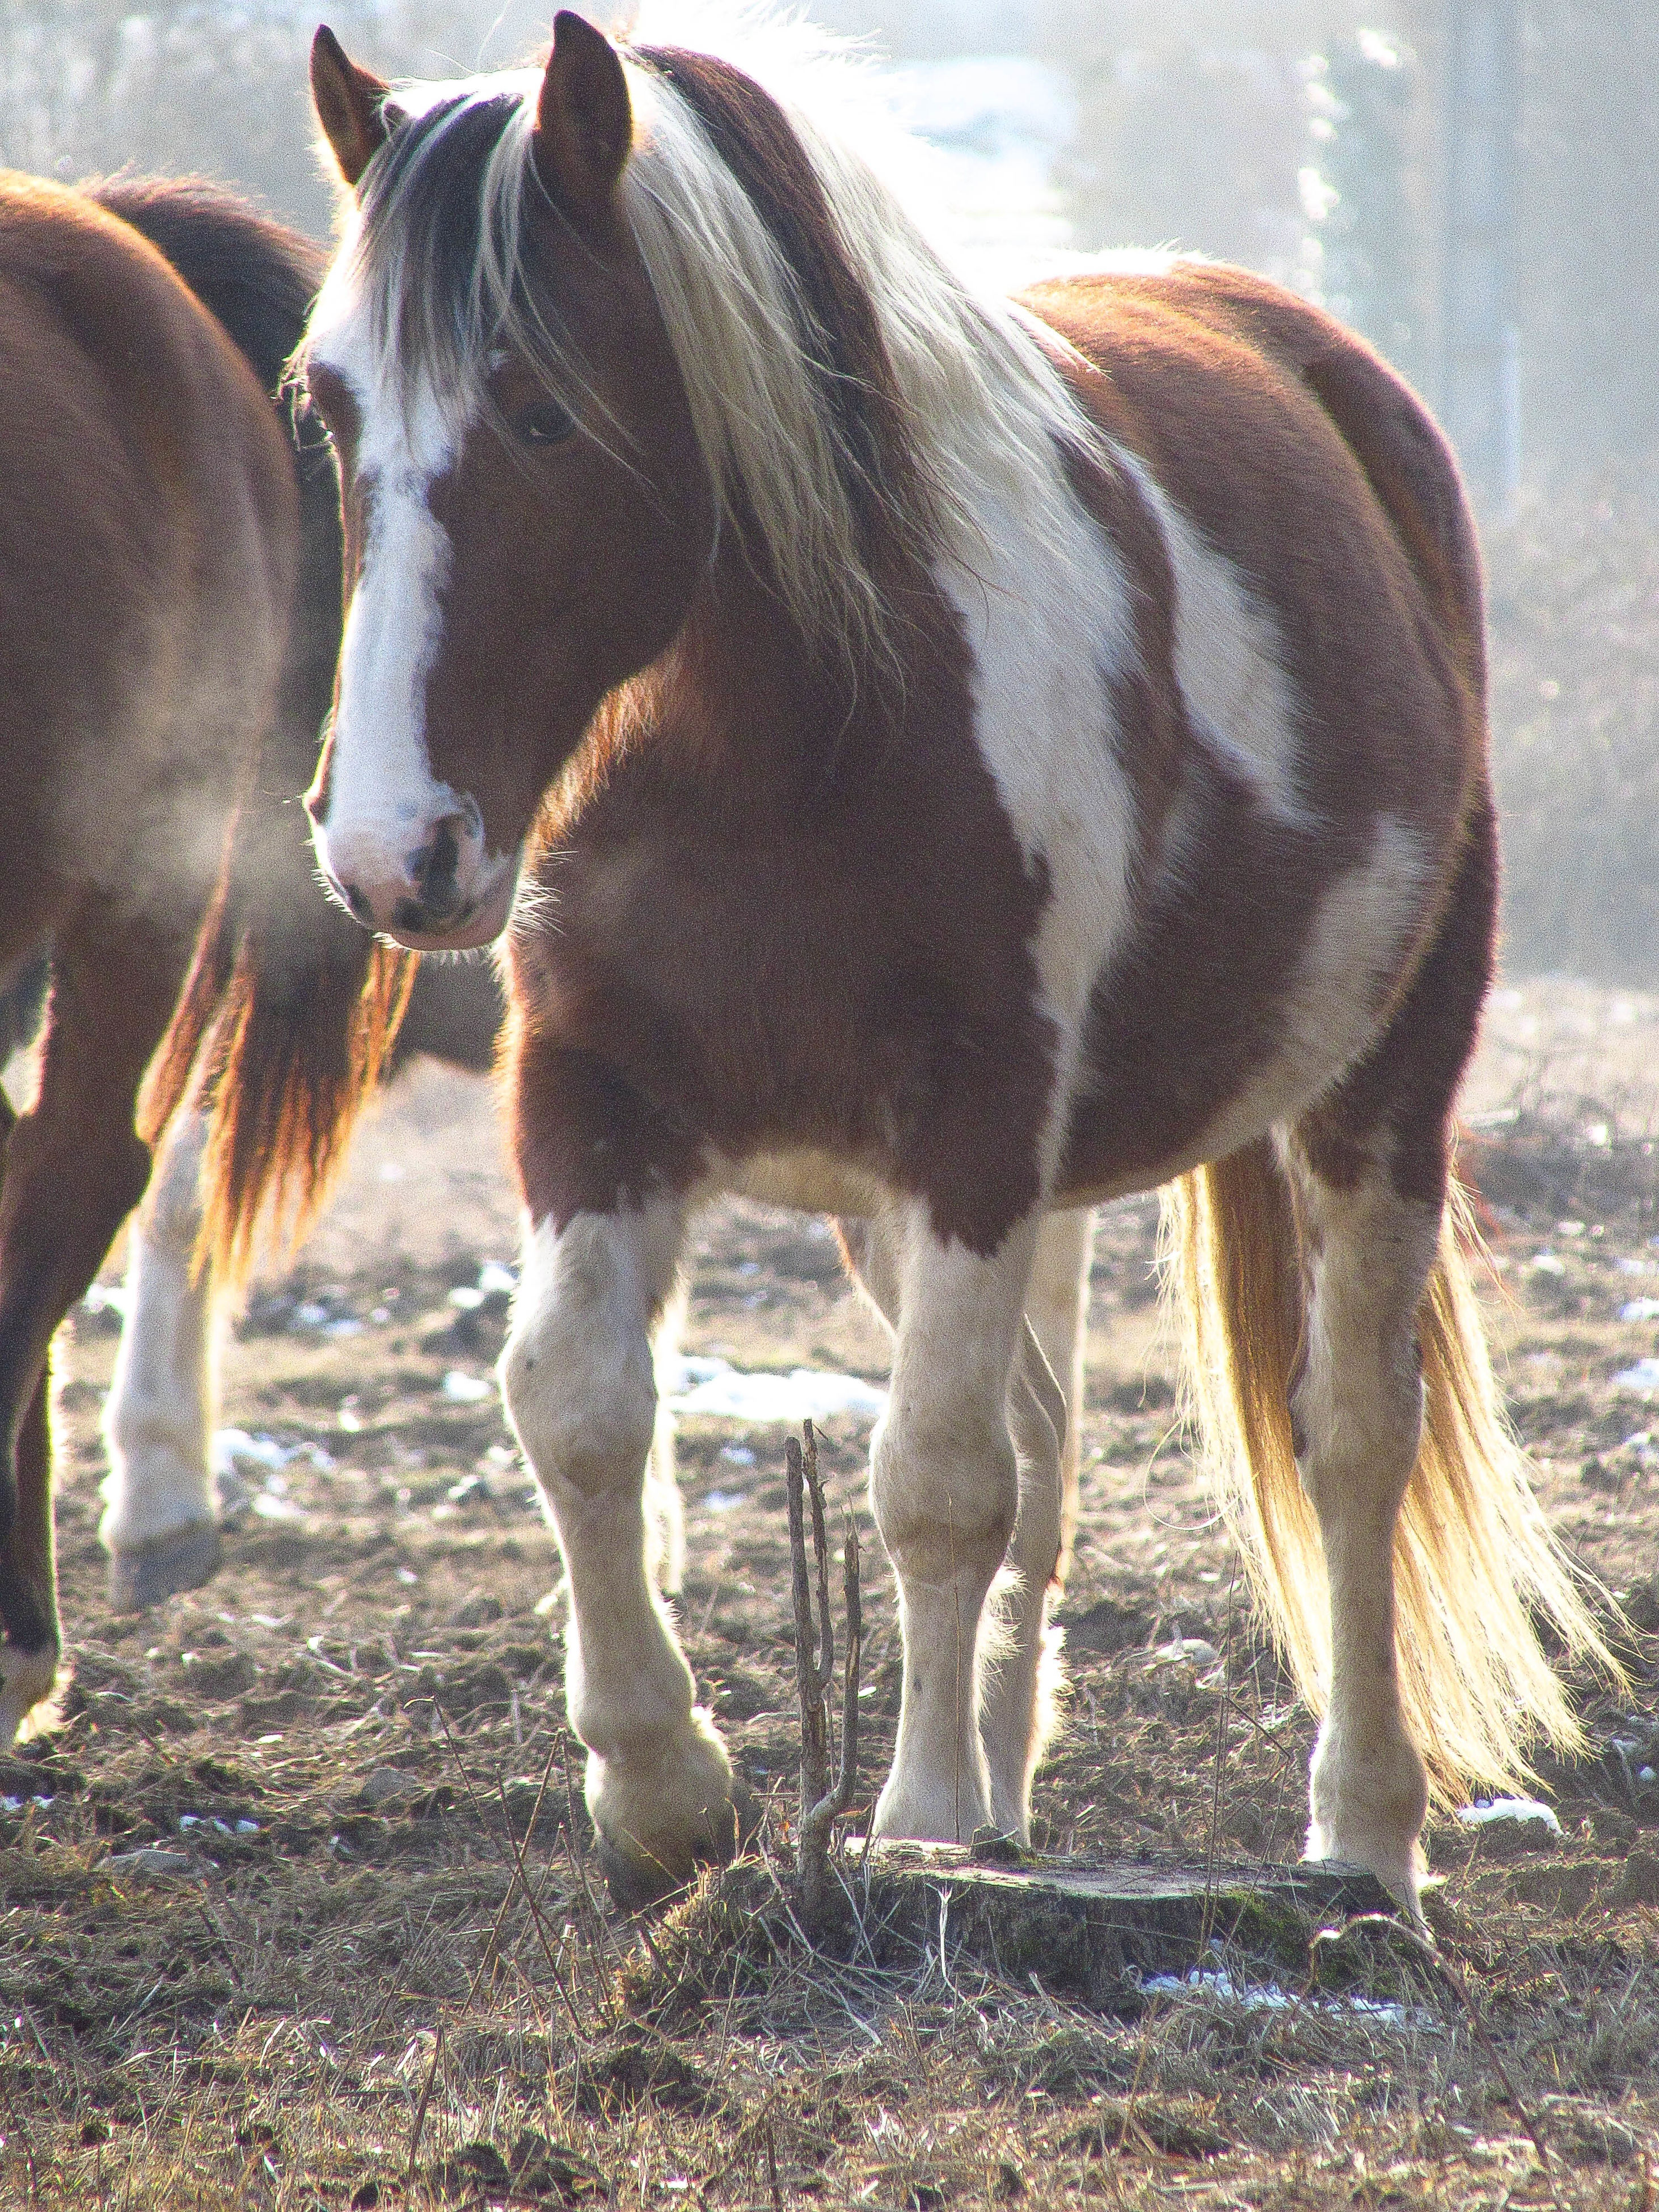 horse, animal themes, mammal, domestic animals, no people, tree, working animal, day, outdoors, close-up